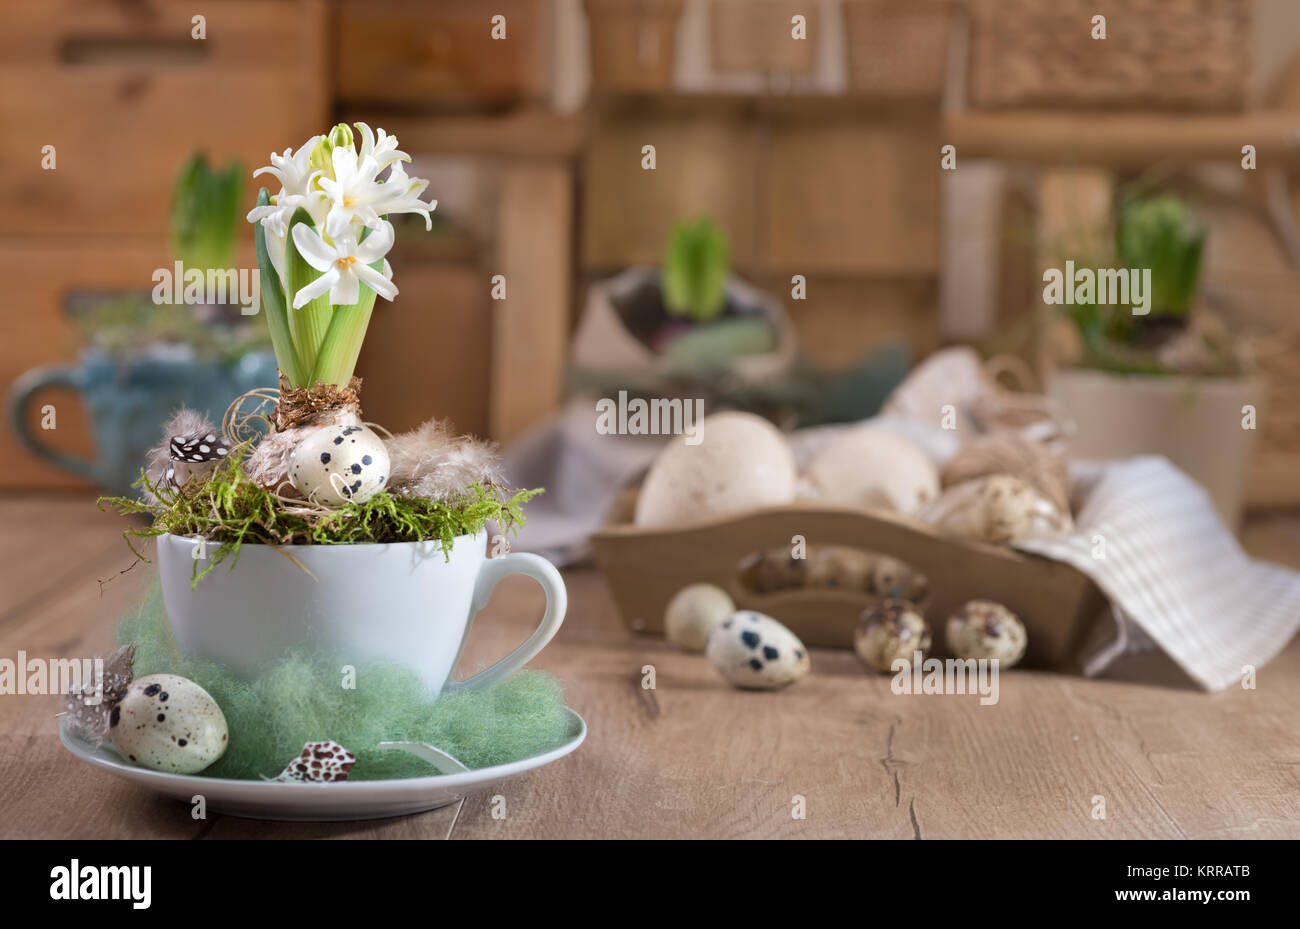 Delicate white pearl hyacinth on vintage kitchen. Happy Easter! - Stock Image